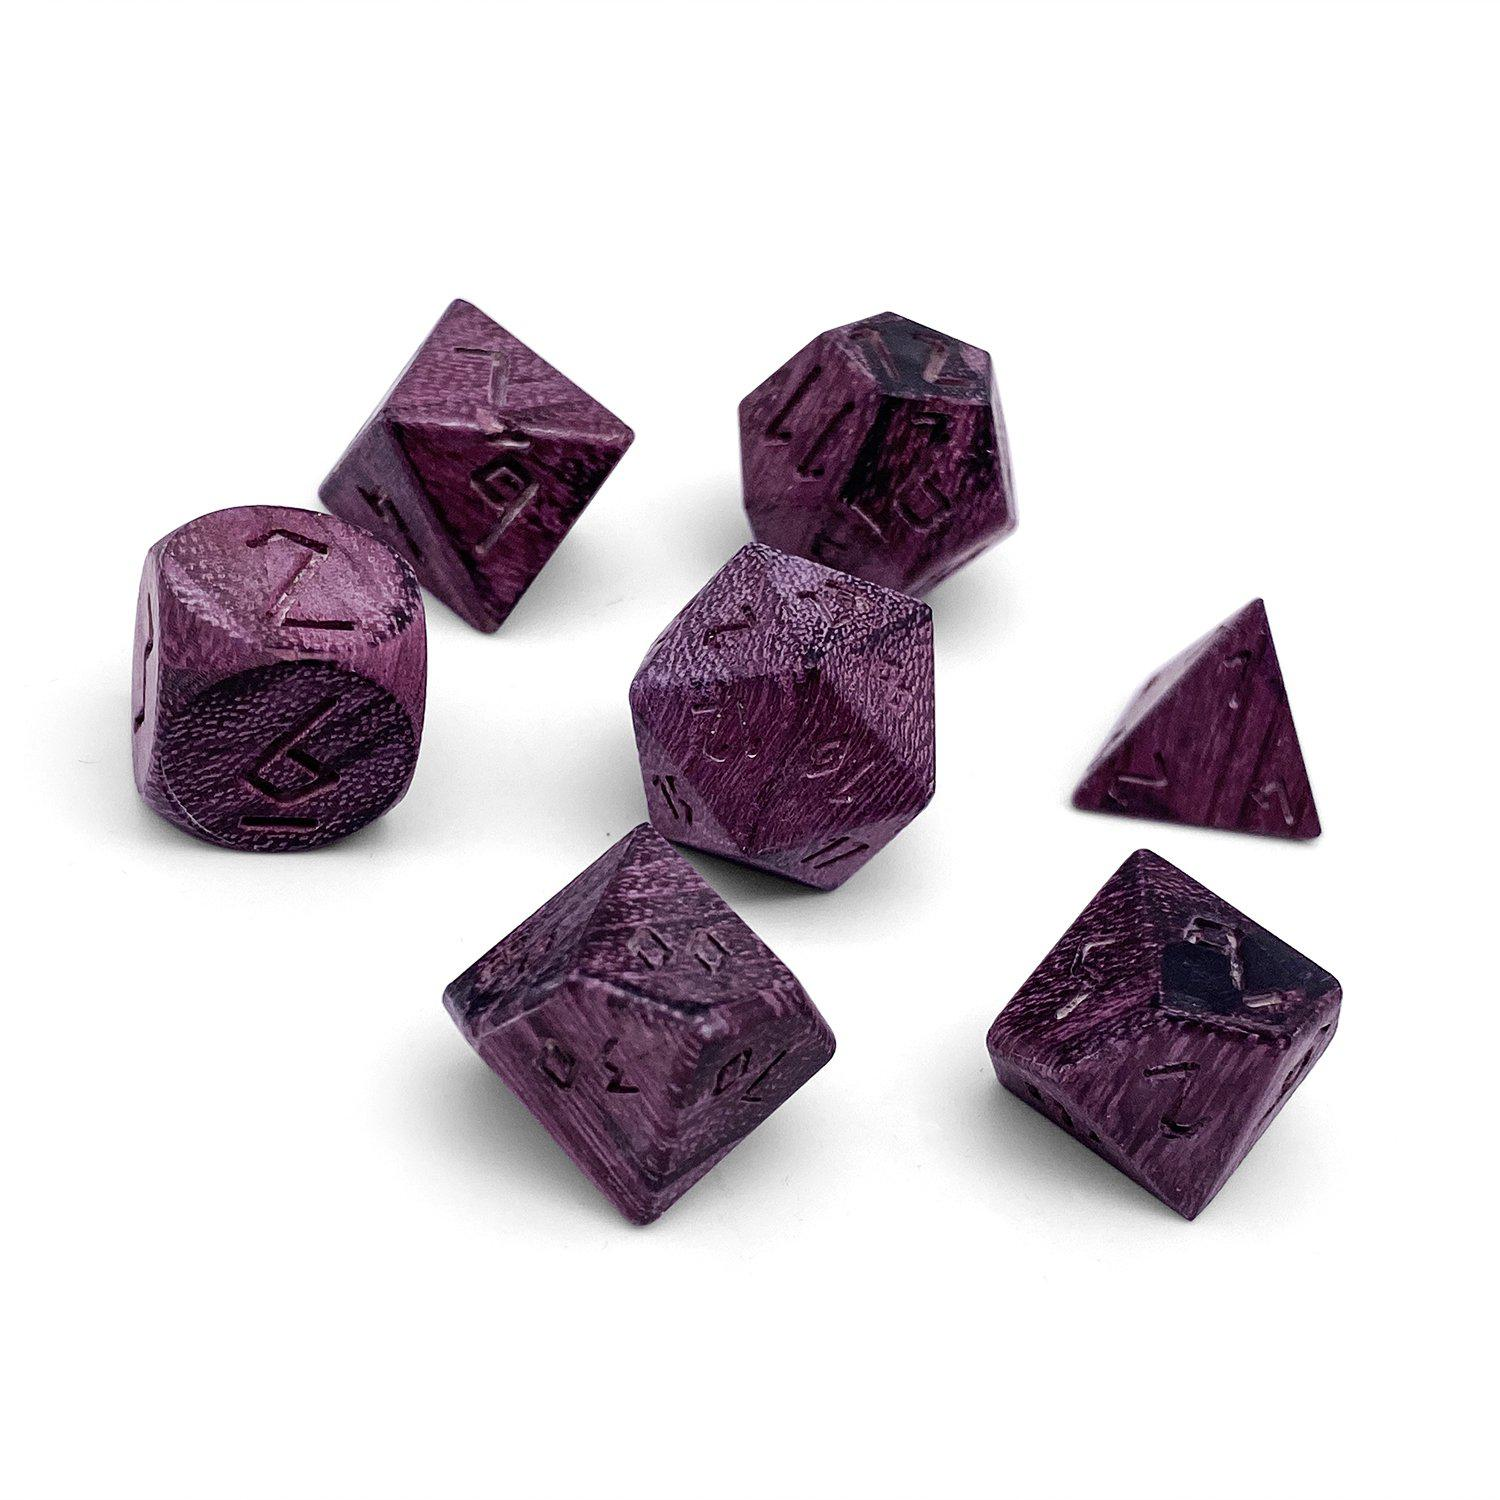 Purple Heart - 7 Piece RPG Wooden Dice Set